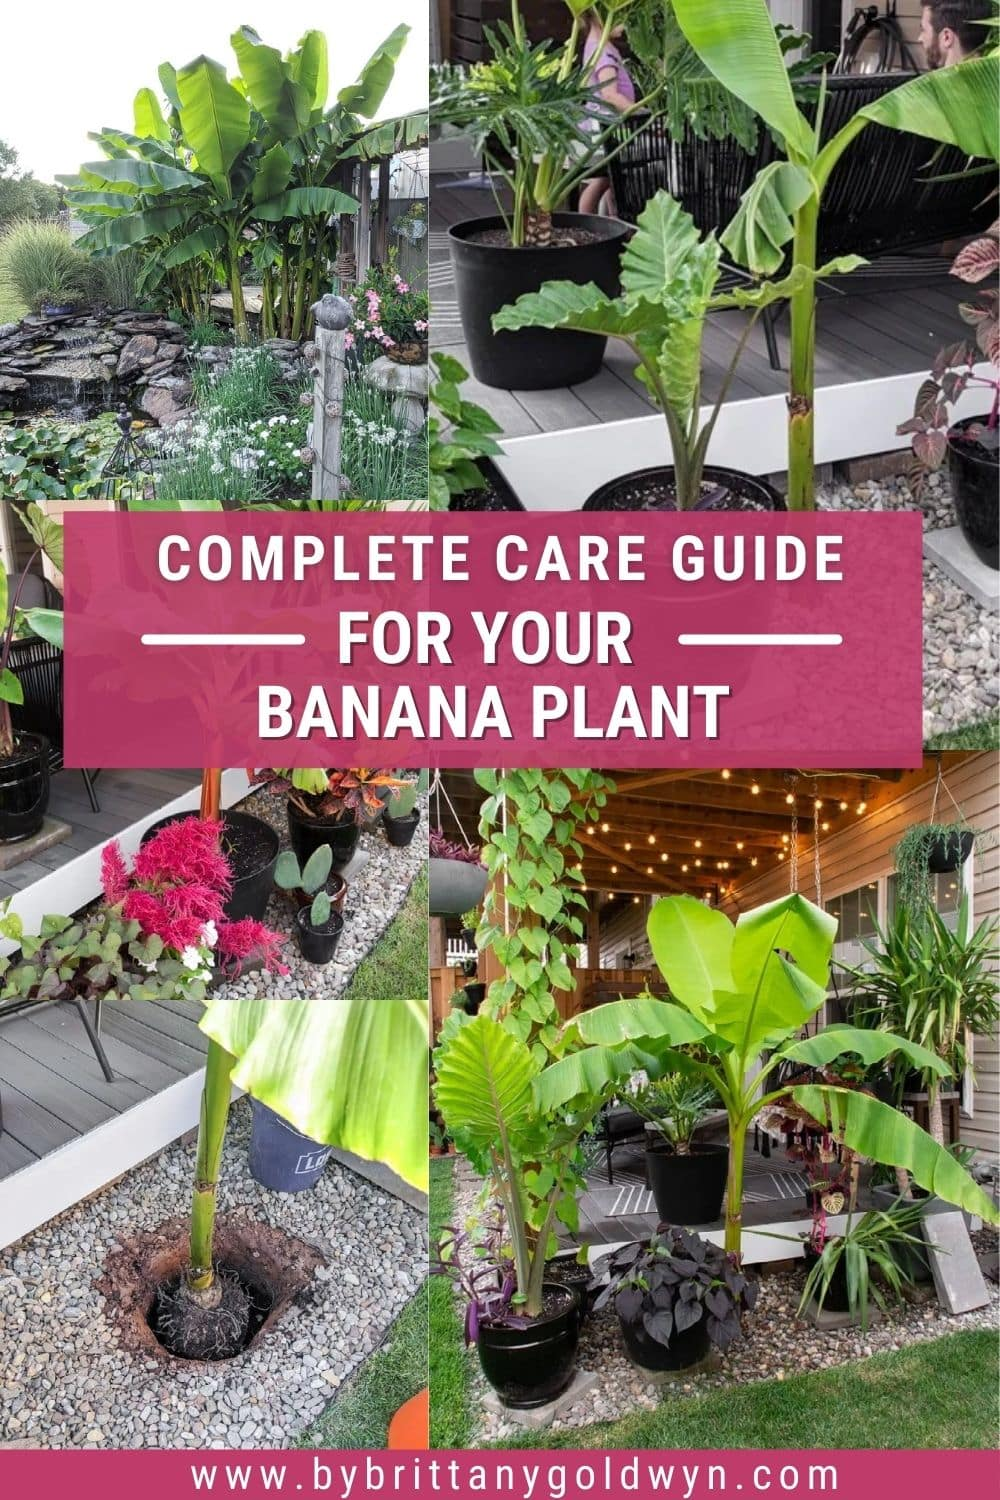 image collage of the banana plant with text overlay